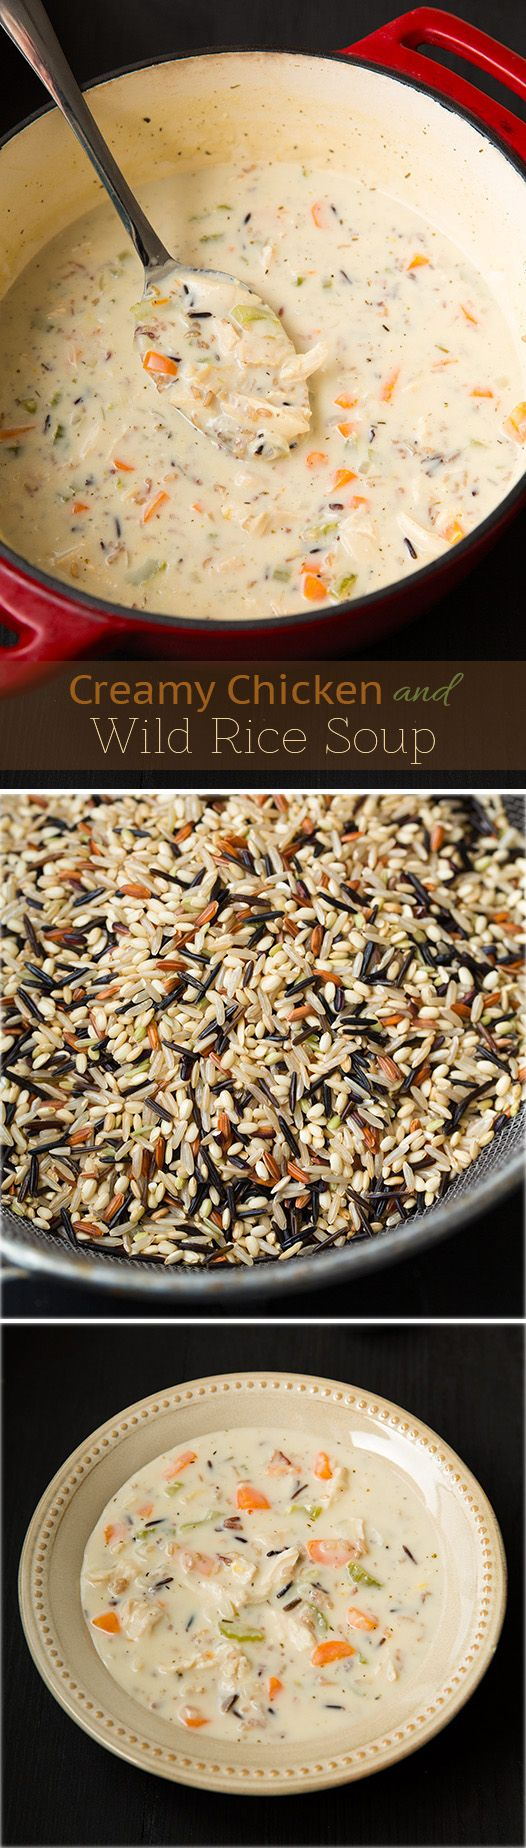 jordans cheap shoes free shipping Creamy Chicken and Wild Rice Soup   This soup is a family favorite  It  39 s so creamy and delicious   cookingclassy